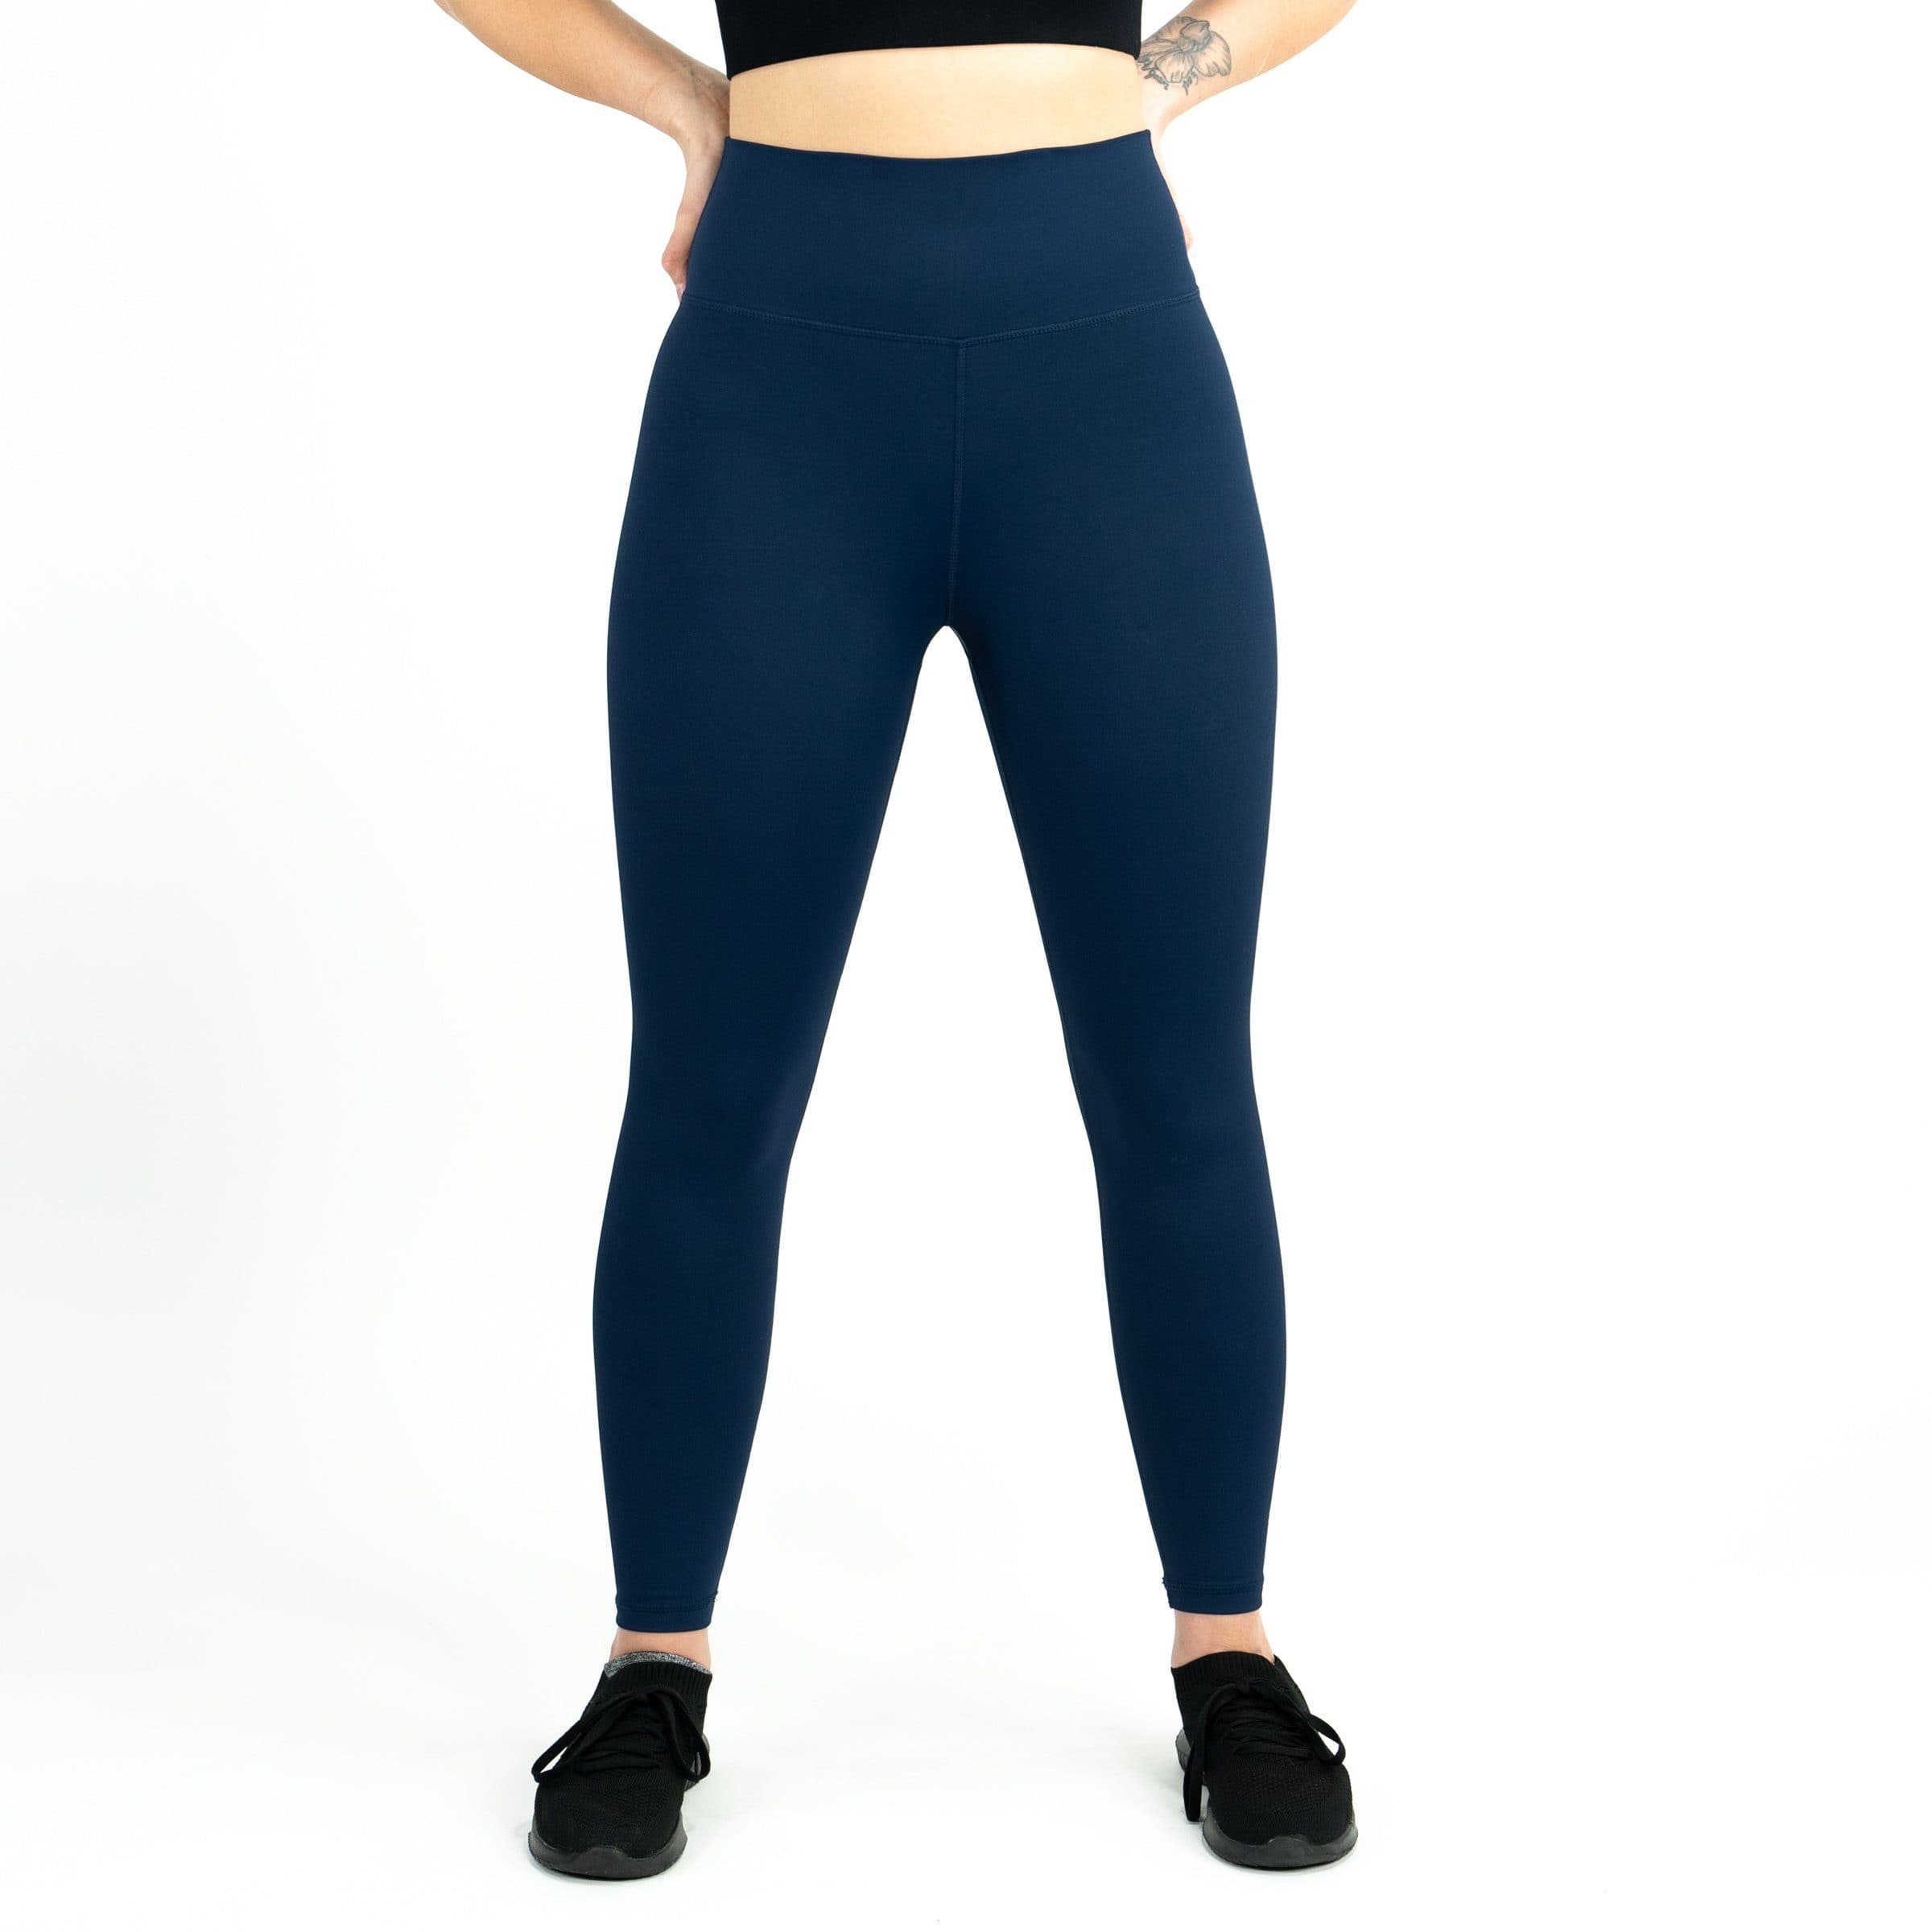 Affinity Leggings Navy 23""